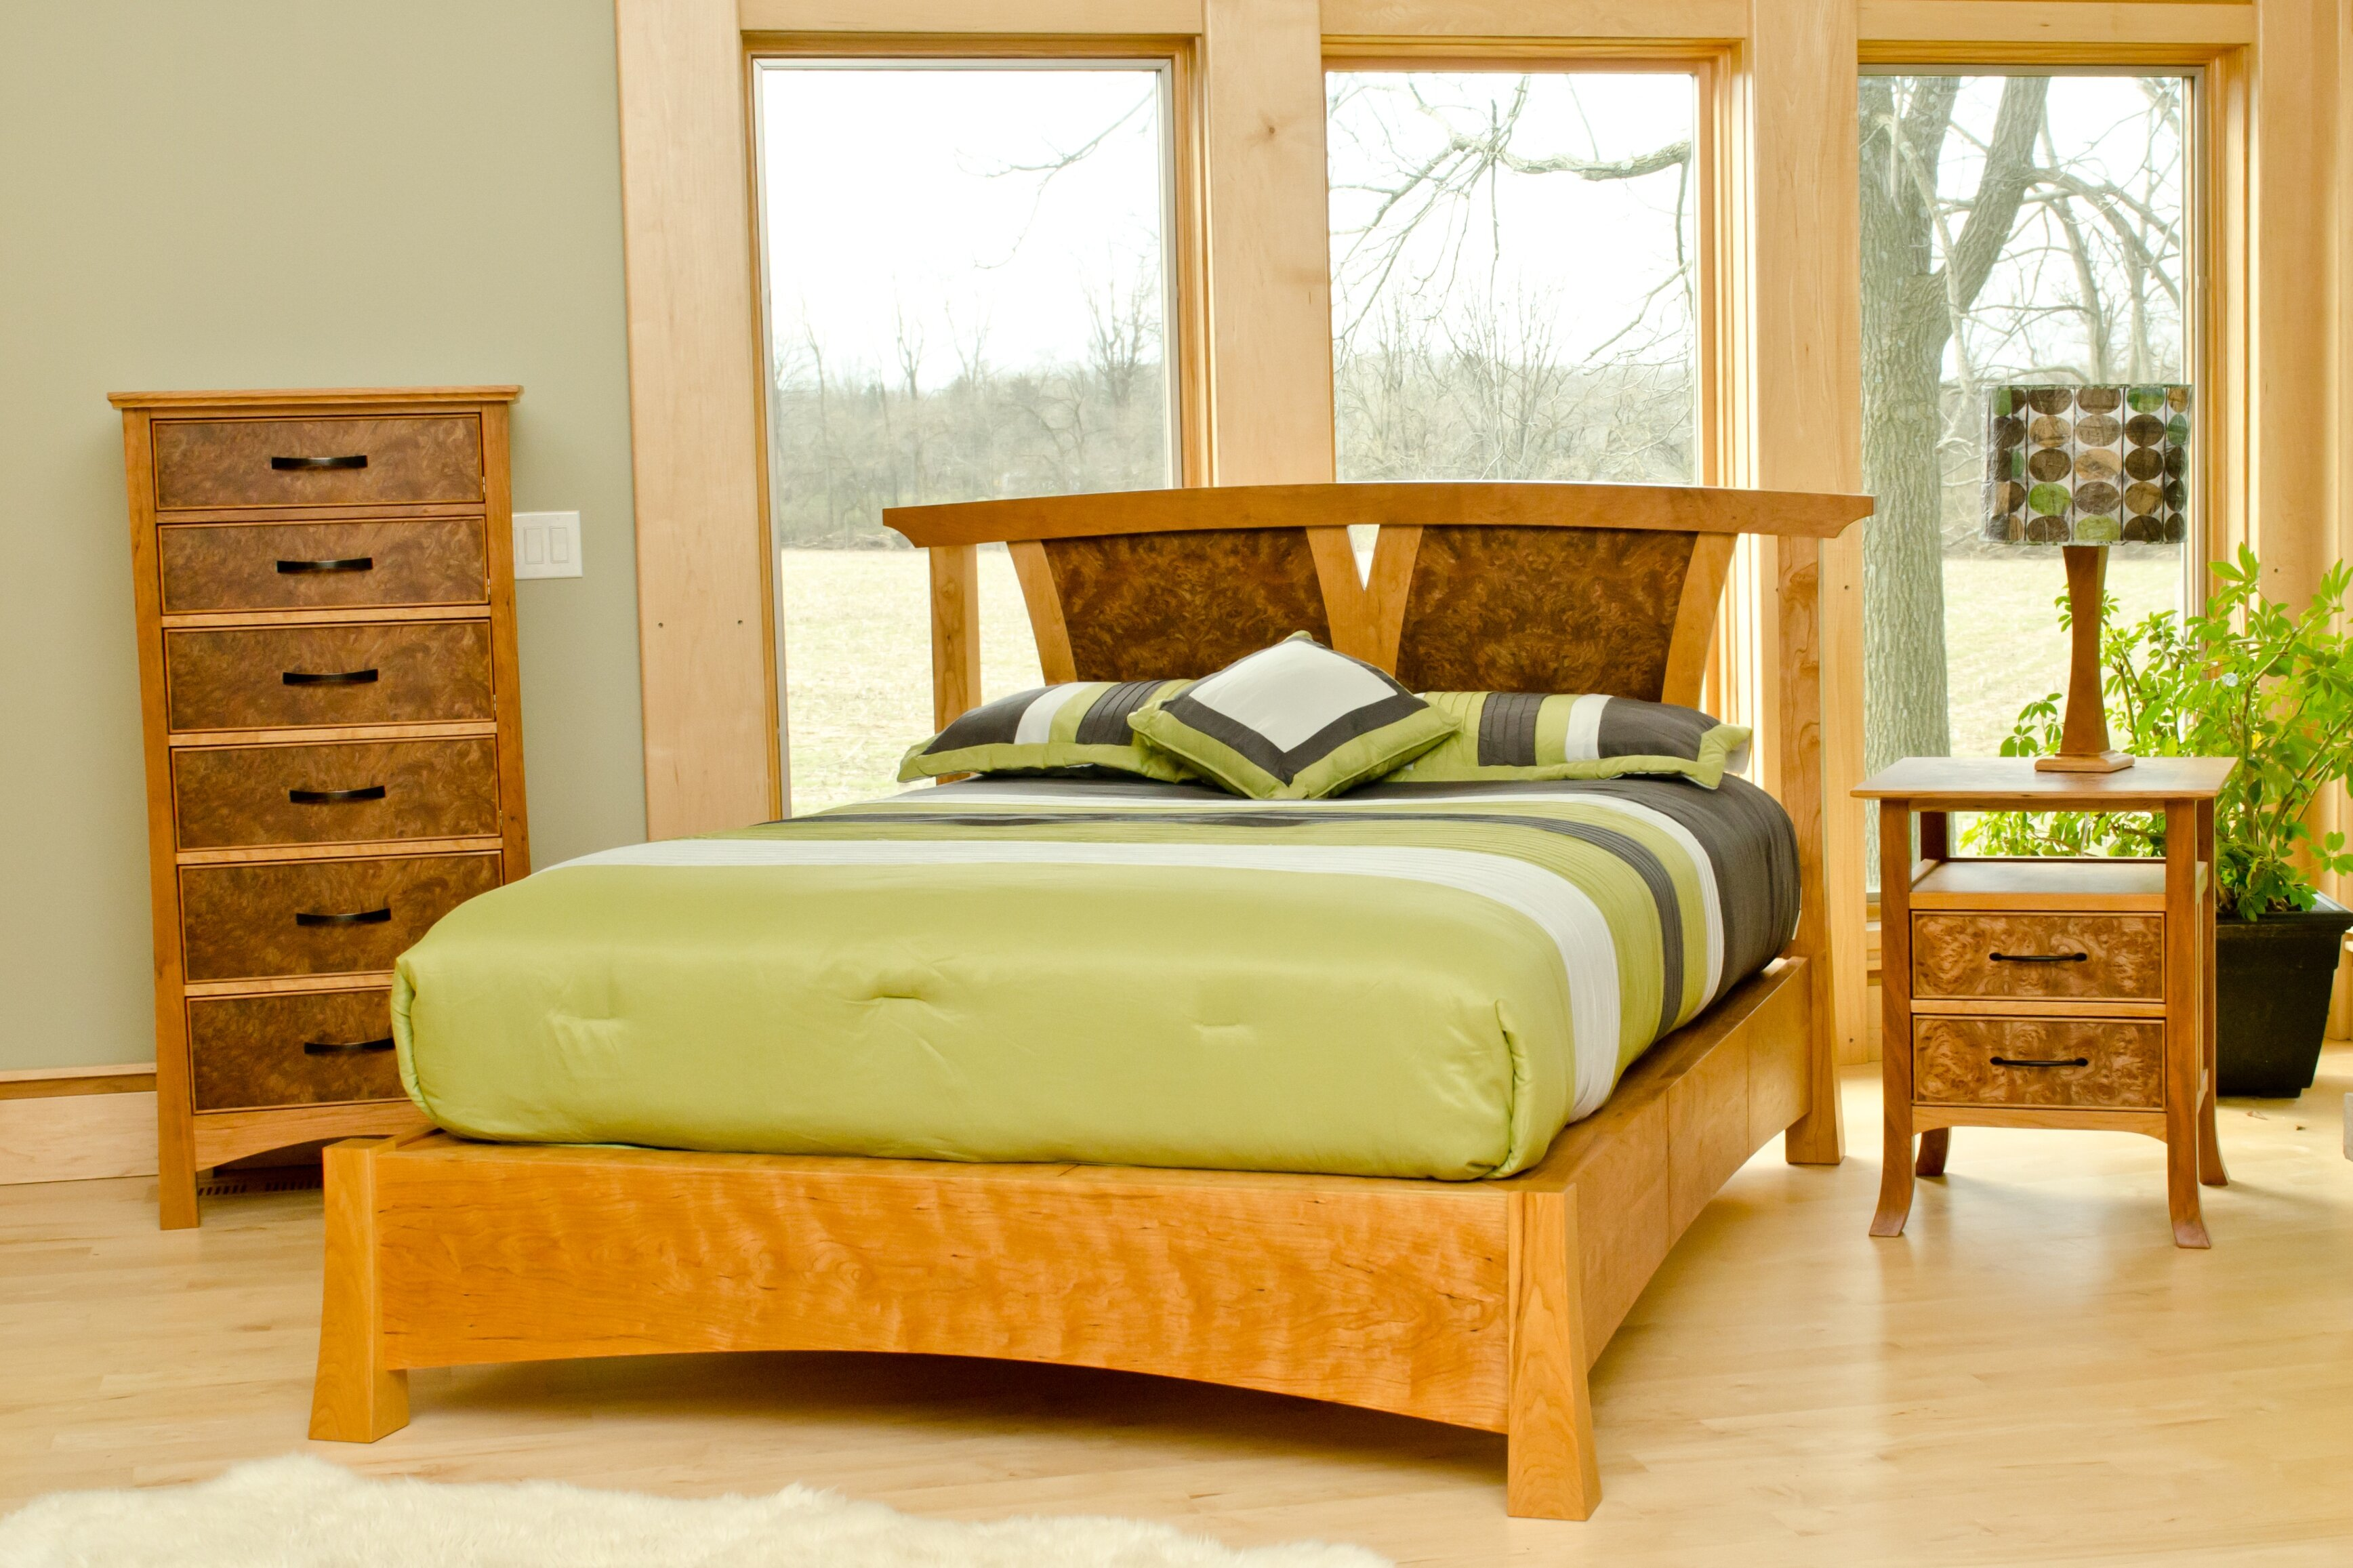 This bedroom set is one of the many custom designs from Keener & Schultz Fine Woodworks.